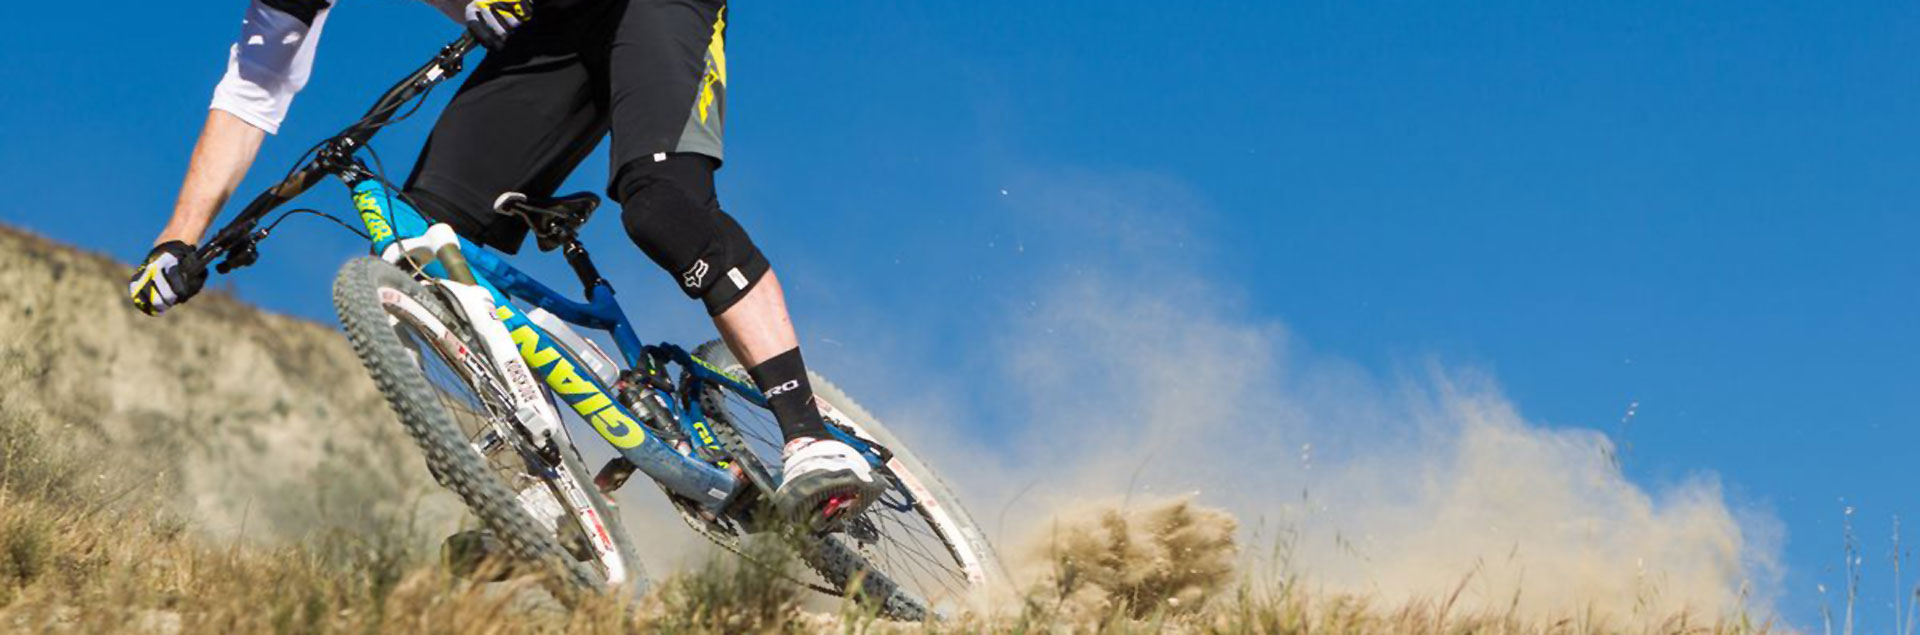 Services that offers Grandvalira Mountain Bike Park Soldeu